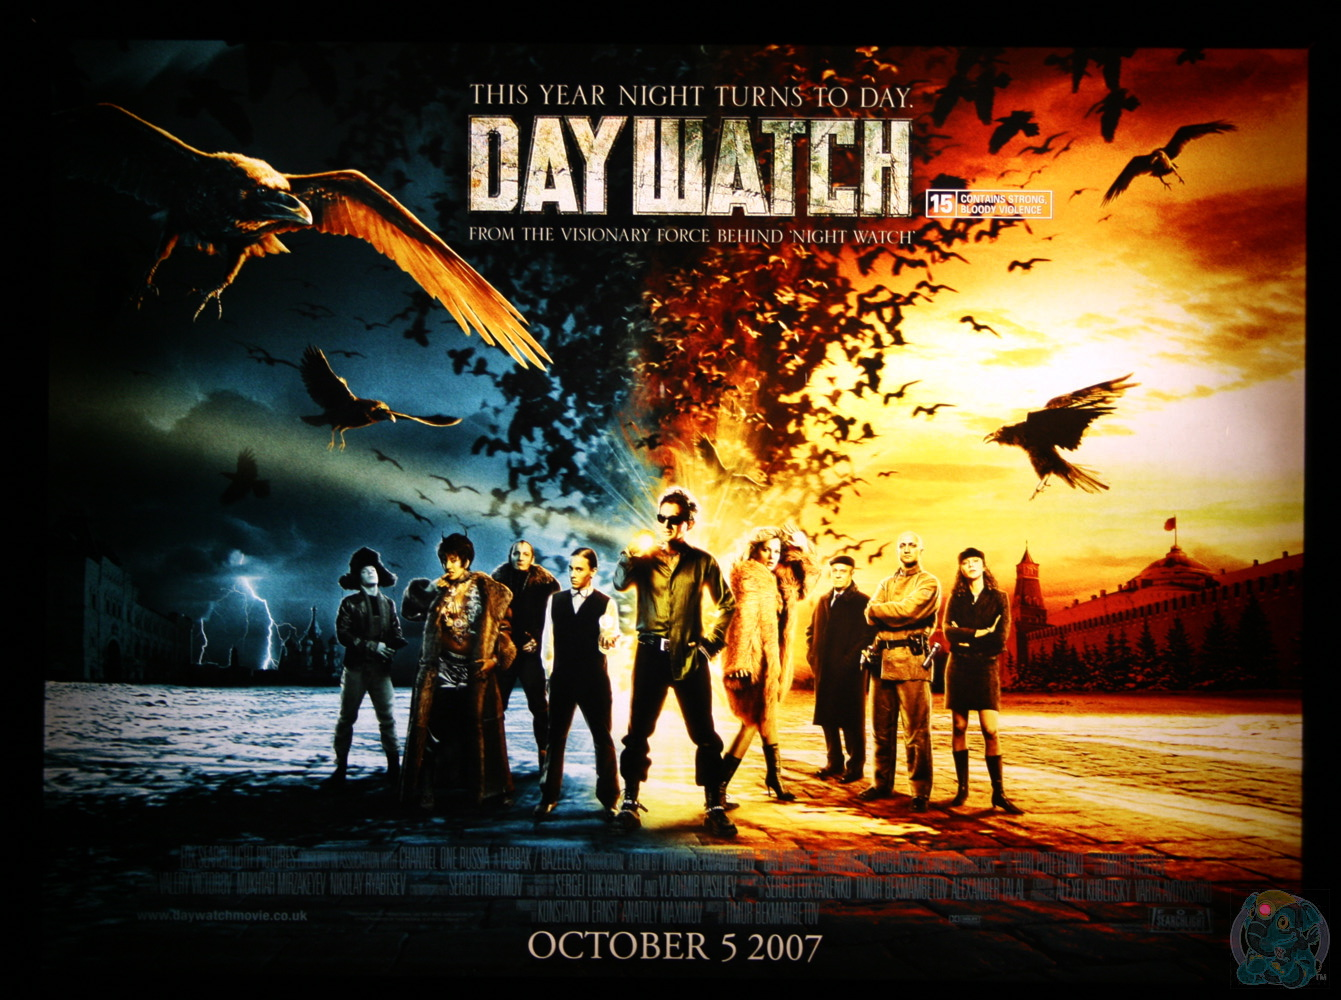 Daywatch and nightwatch